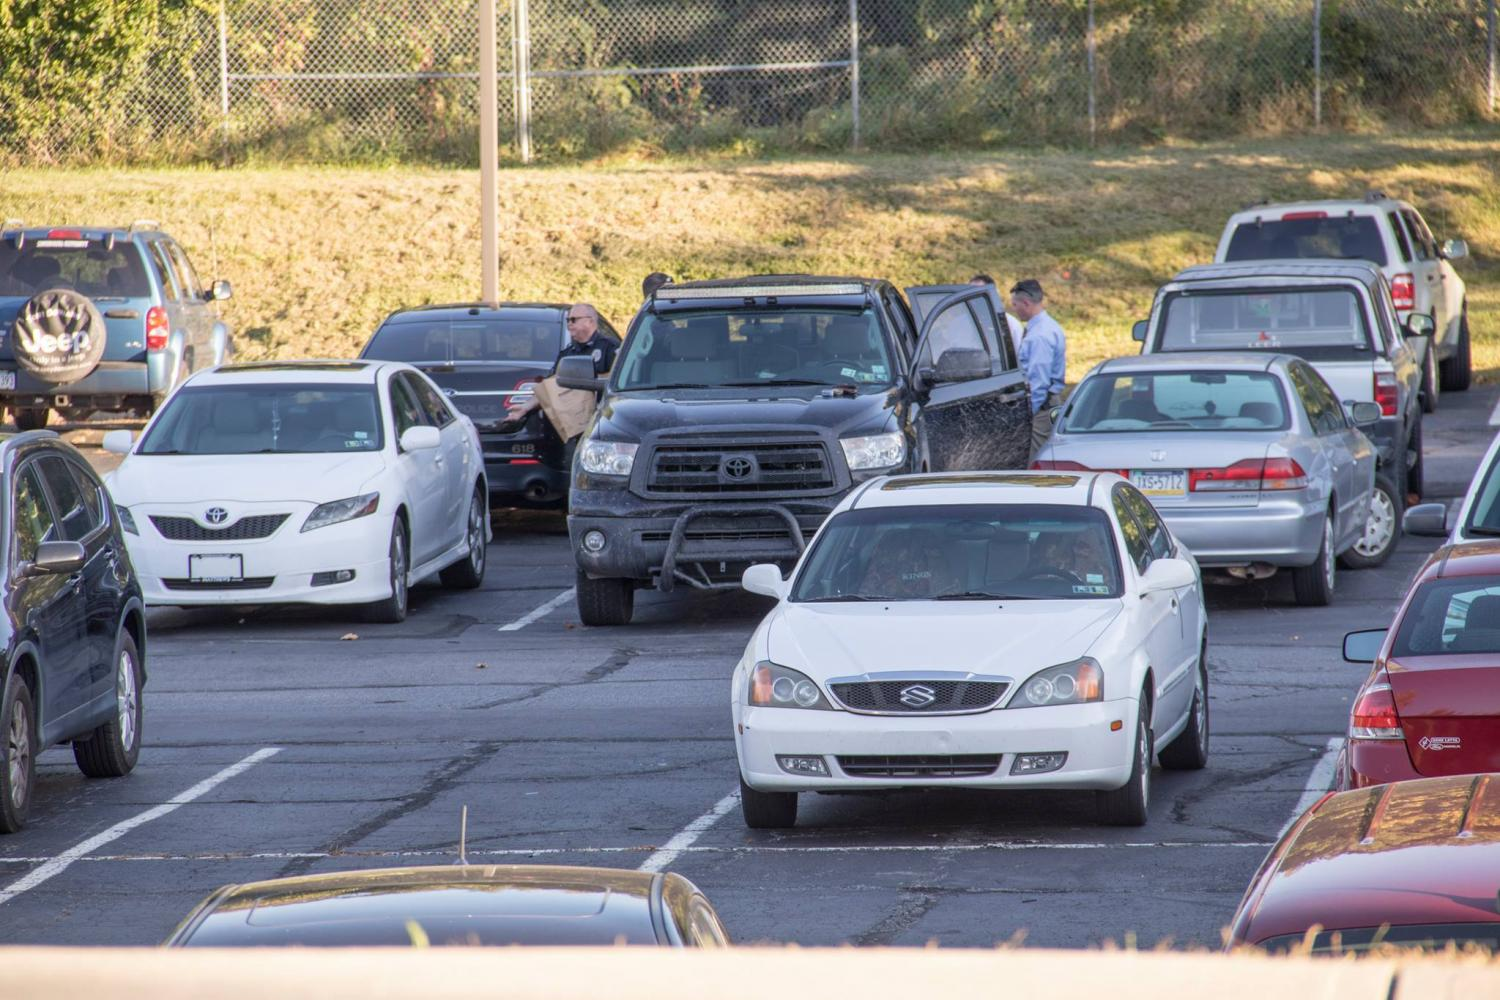 The suspect's vehicle, a black Toyota pickup, was searched in the upper pit parking lot behind Loughran Hall.